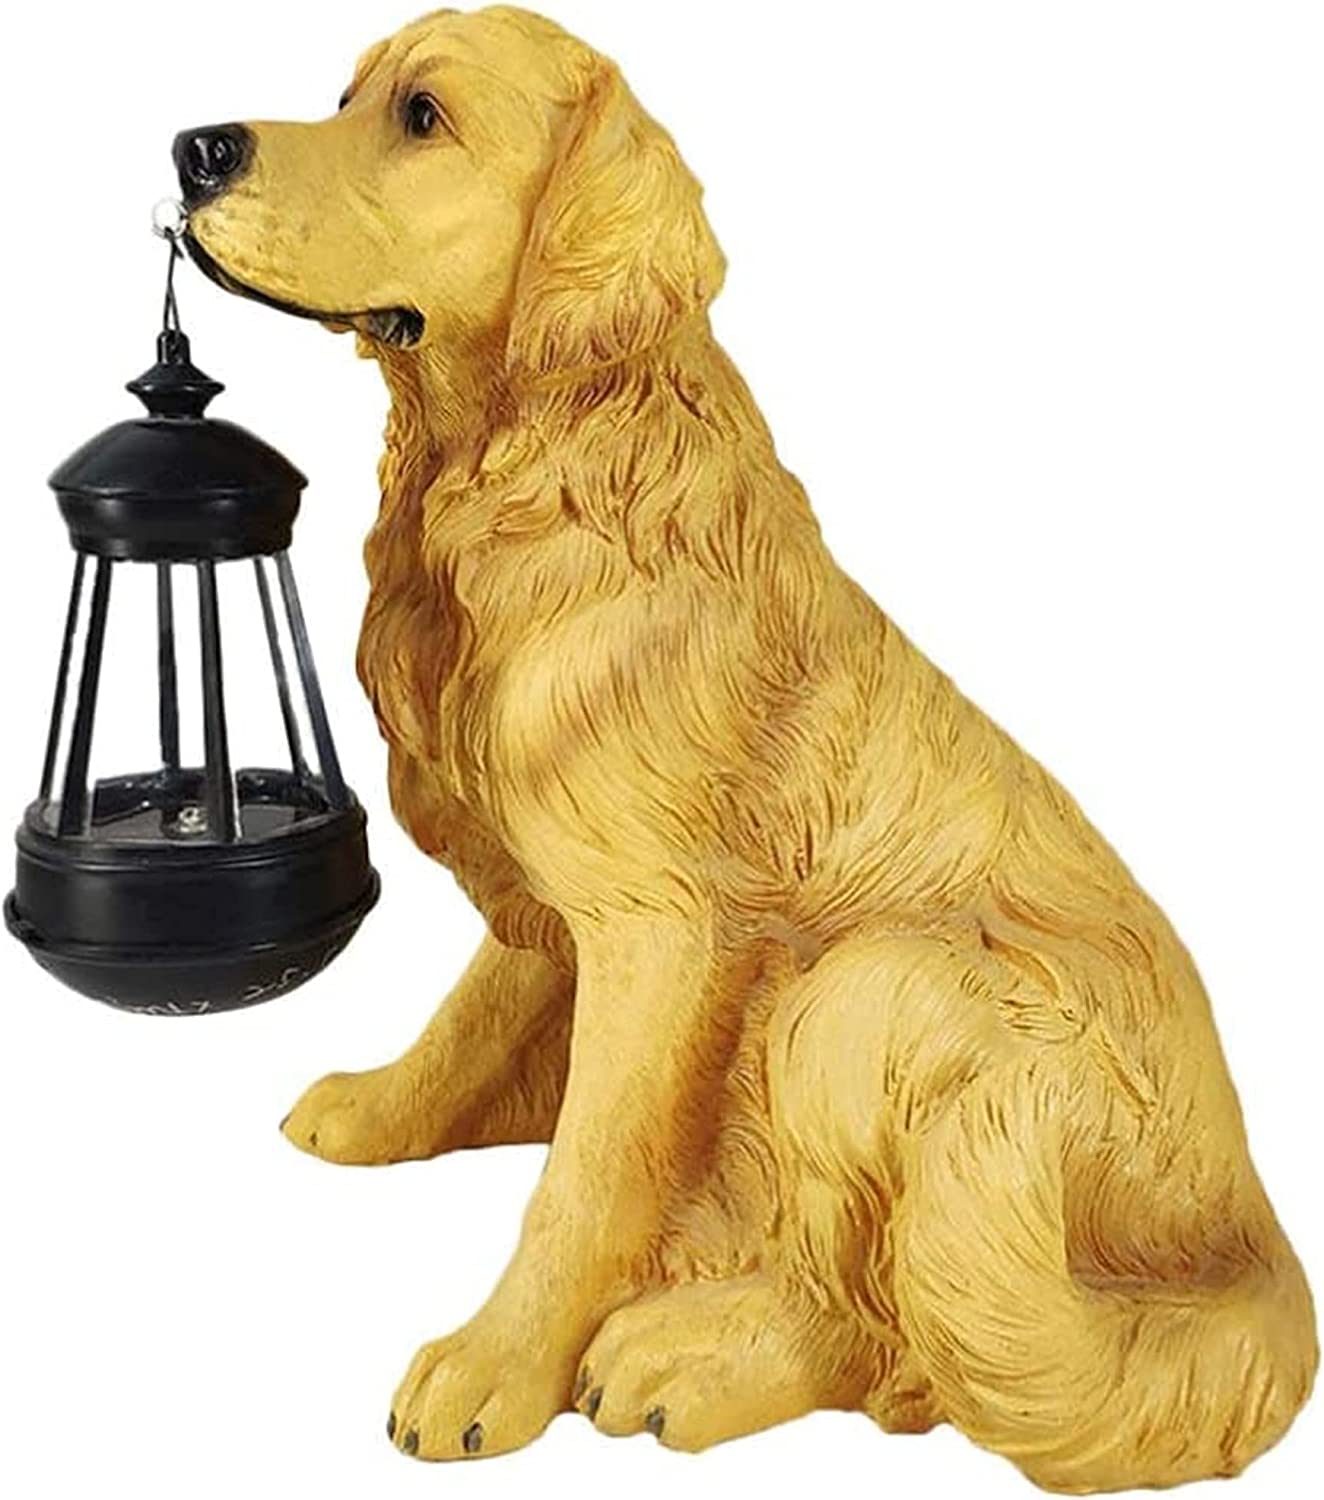 AMYZ Dog Memorial Statue Max 67% OFF Free shipping anywhere in the nation Garden Solar Ou Lights Ornaments